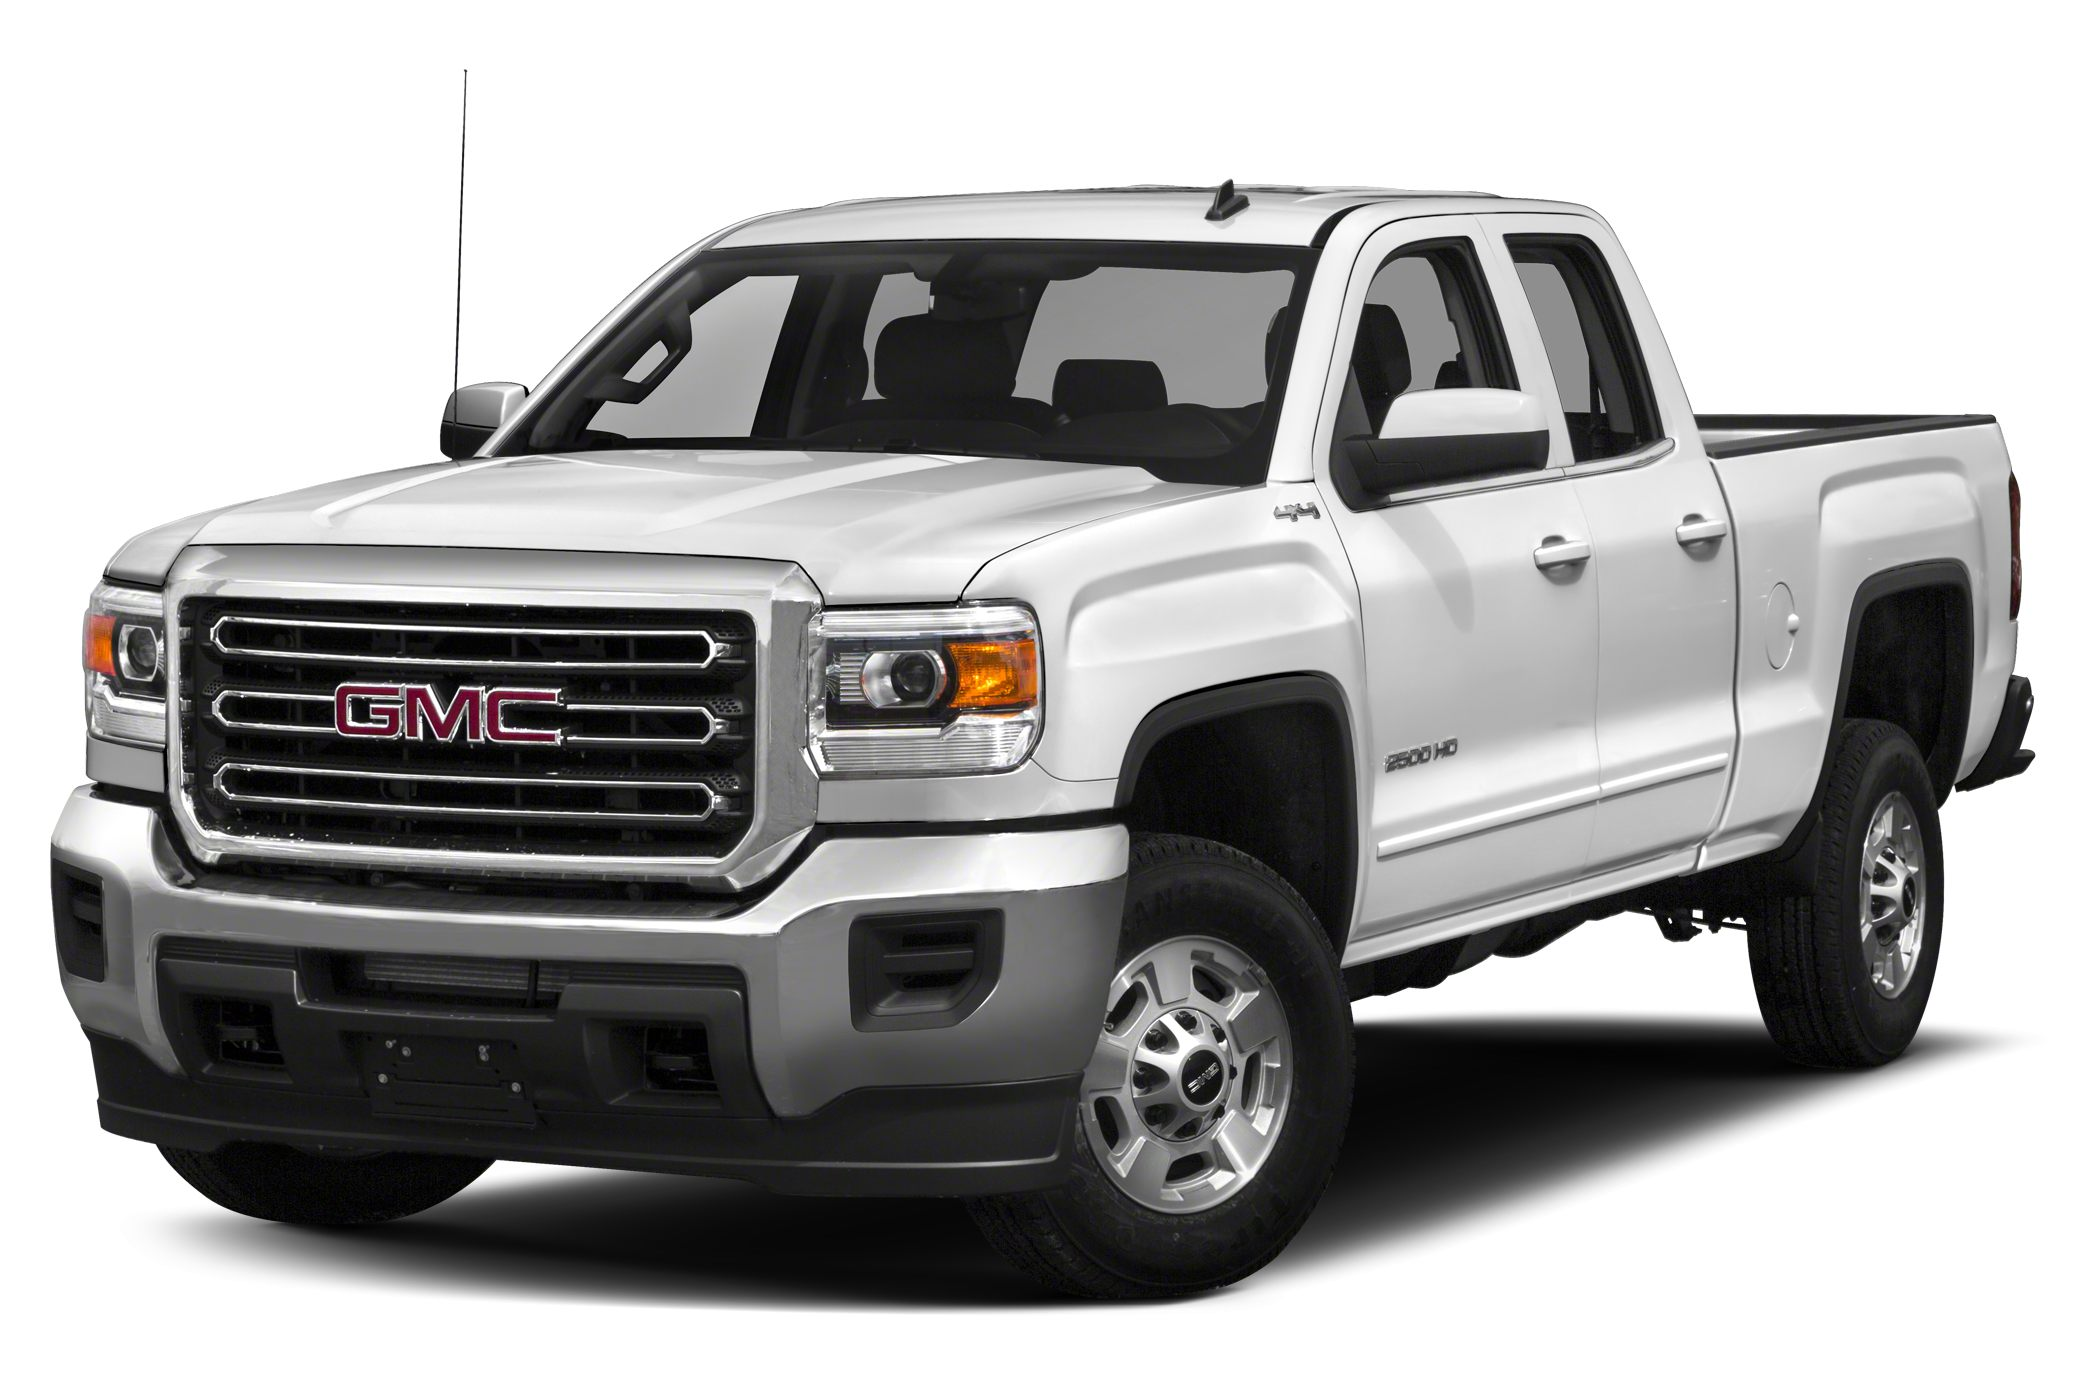 2015 GMC Sierra 2500 SLE Crew Cab Pickup for sale in Murphy for $47,400 with 19 miles